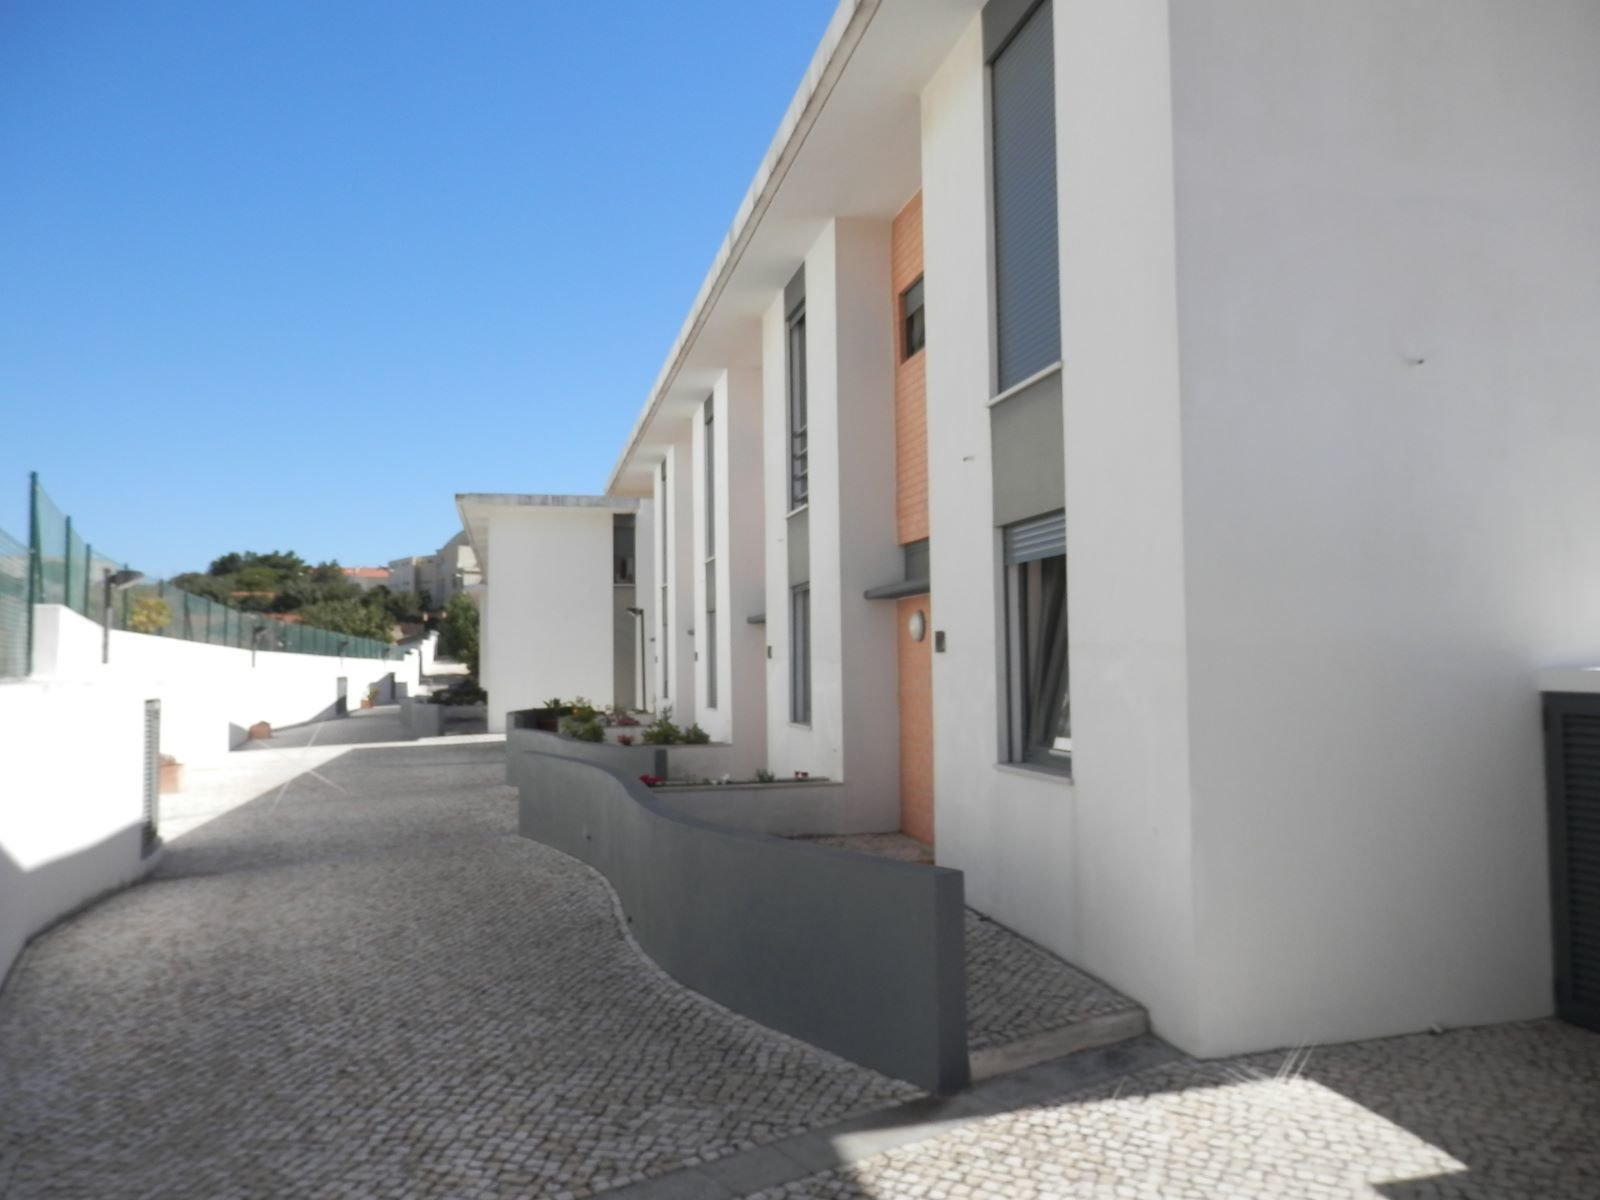 3 Bedroom Villa Cascais, Lisbon Ref